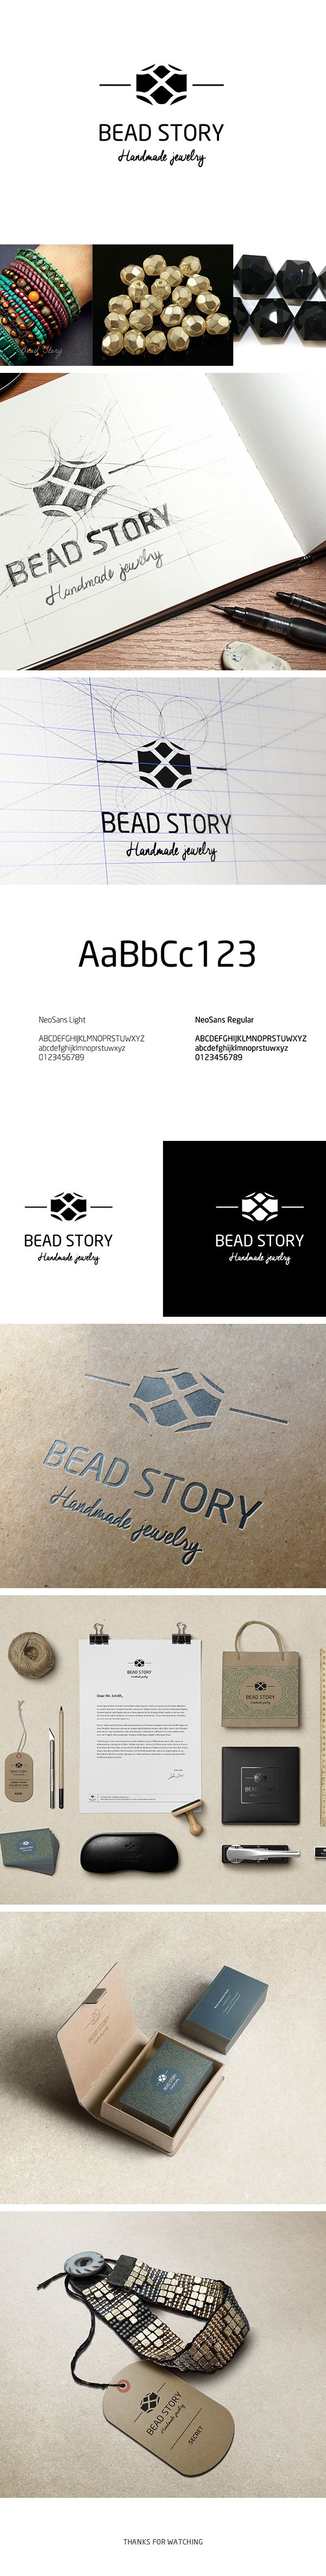 Bead Story Branding © on Behance